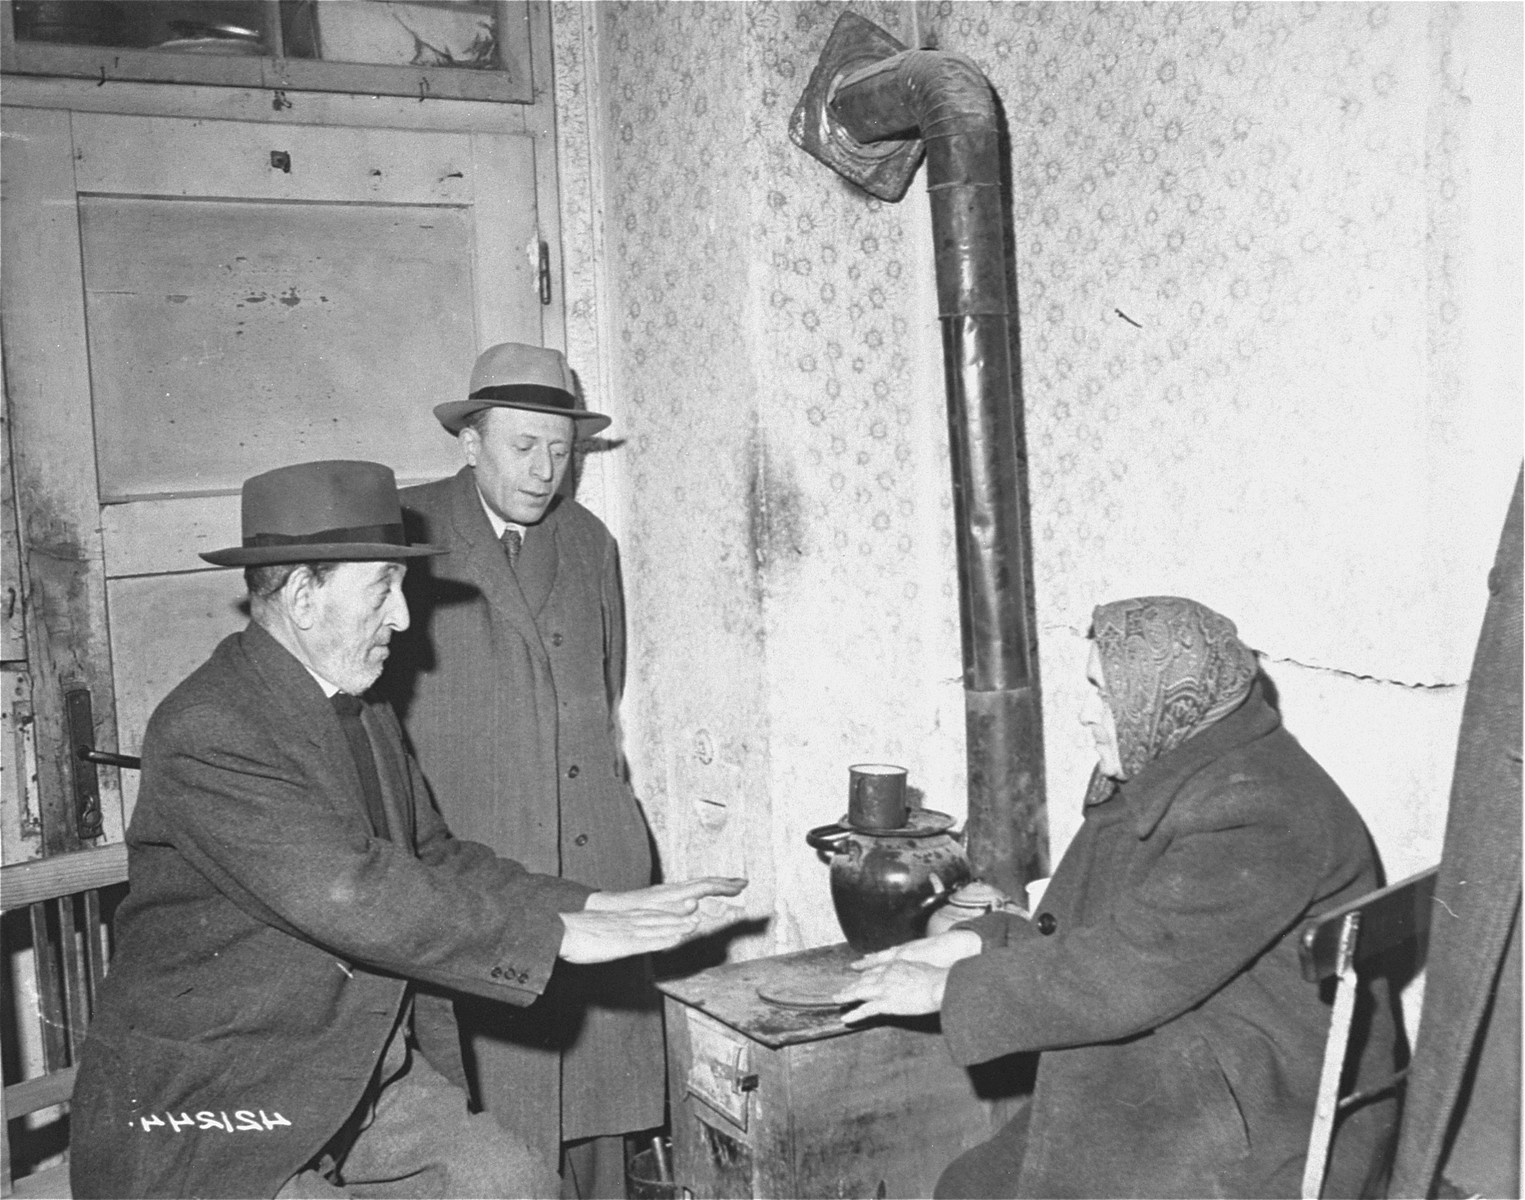 A Jewish DP family huddles around the stove which is used for heating and cooking at the Jewish DP camp located at Hallein, 15 miles from Salzburg.